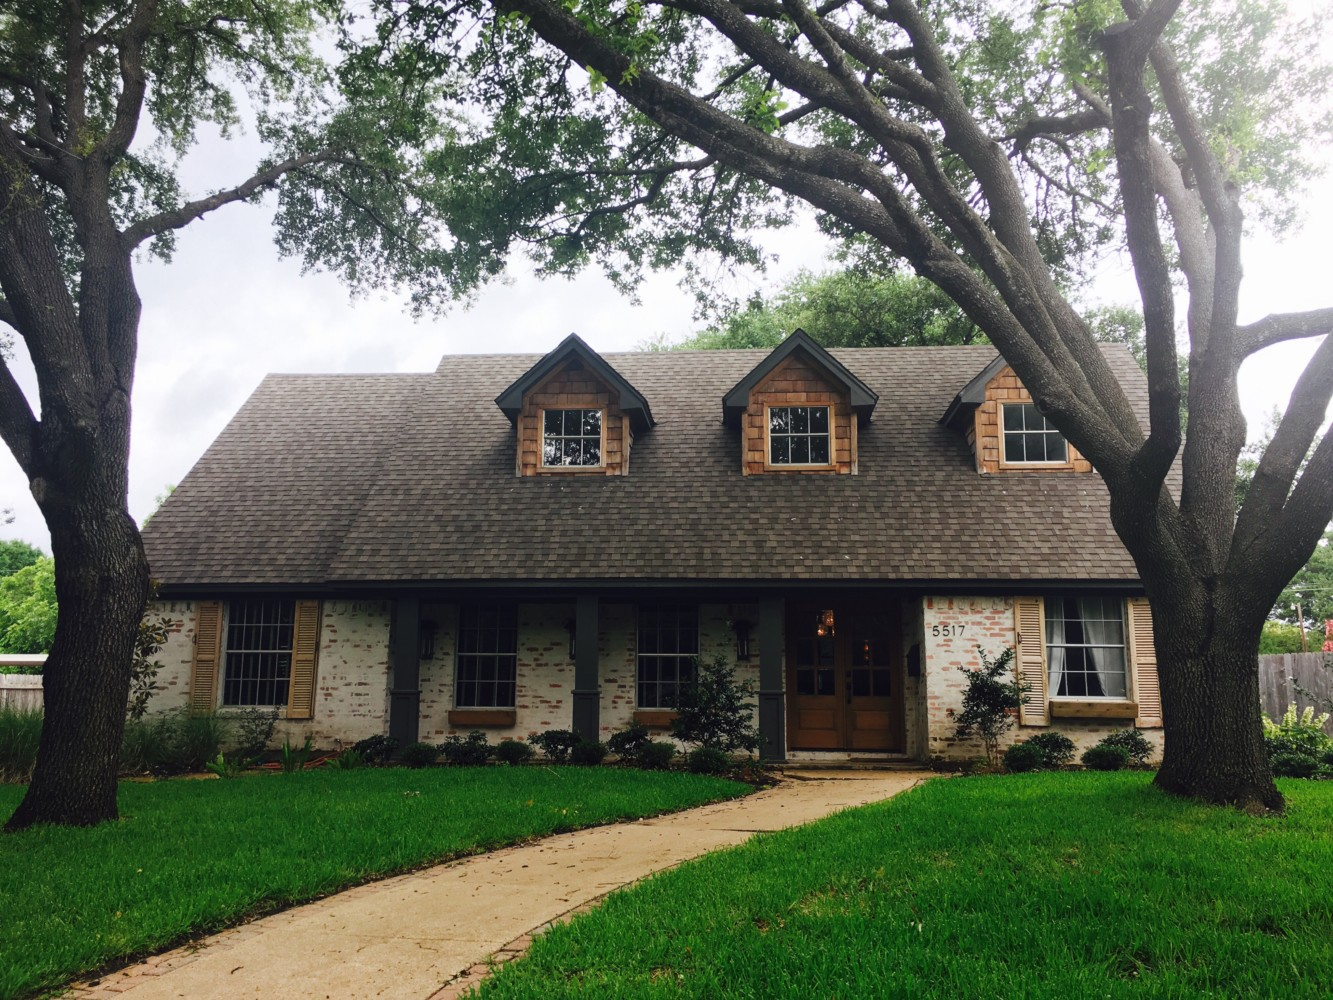 Driving Tour Of 10 Fixer Upper Home Makeovers Funcycled,Disney Christmas Outdoor Decorations